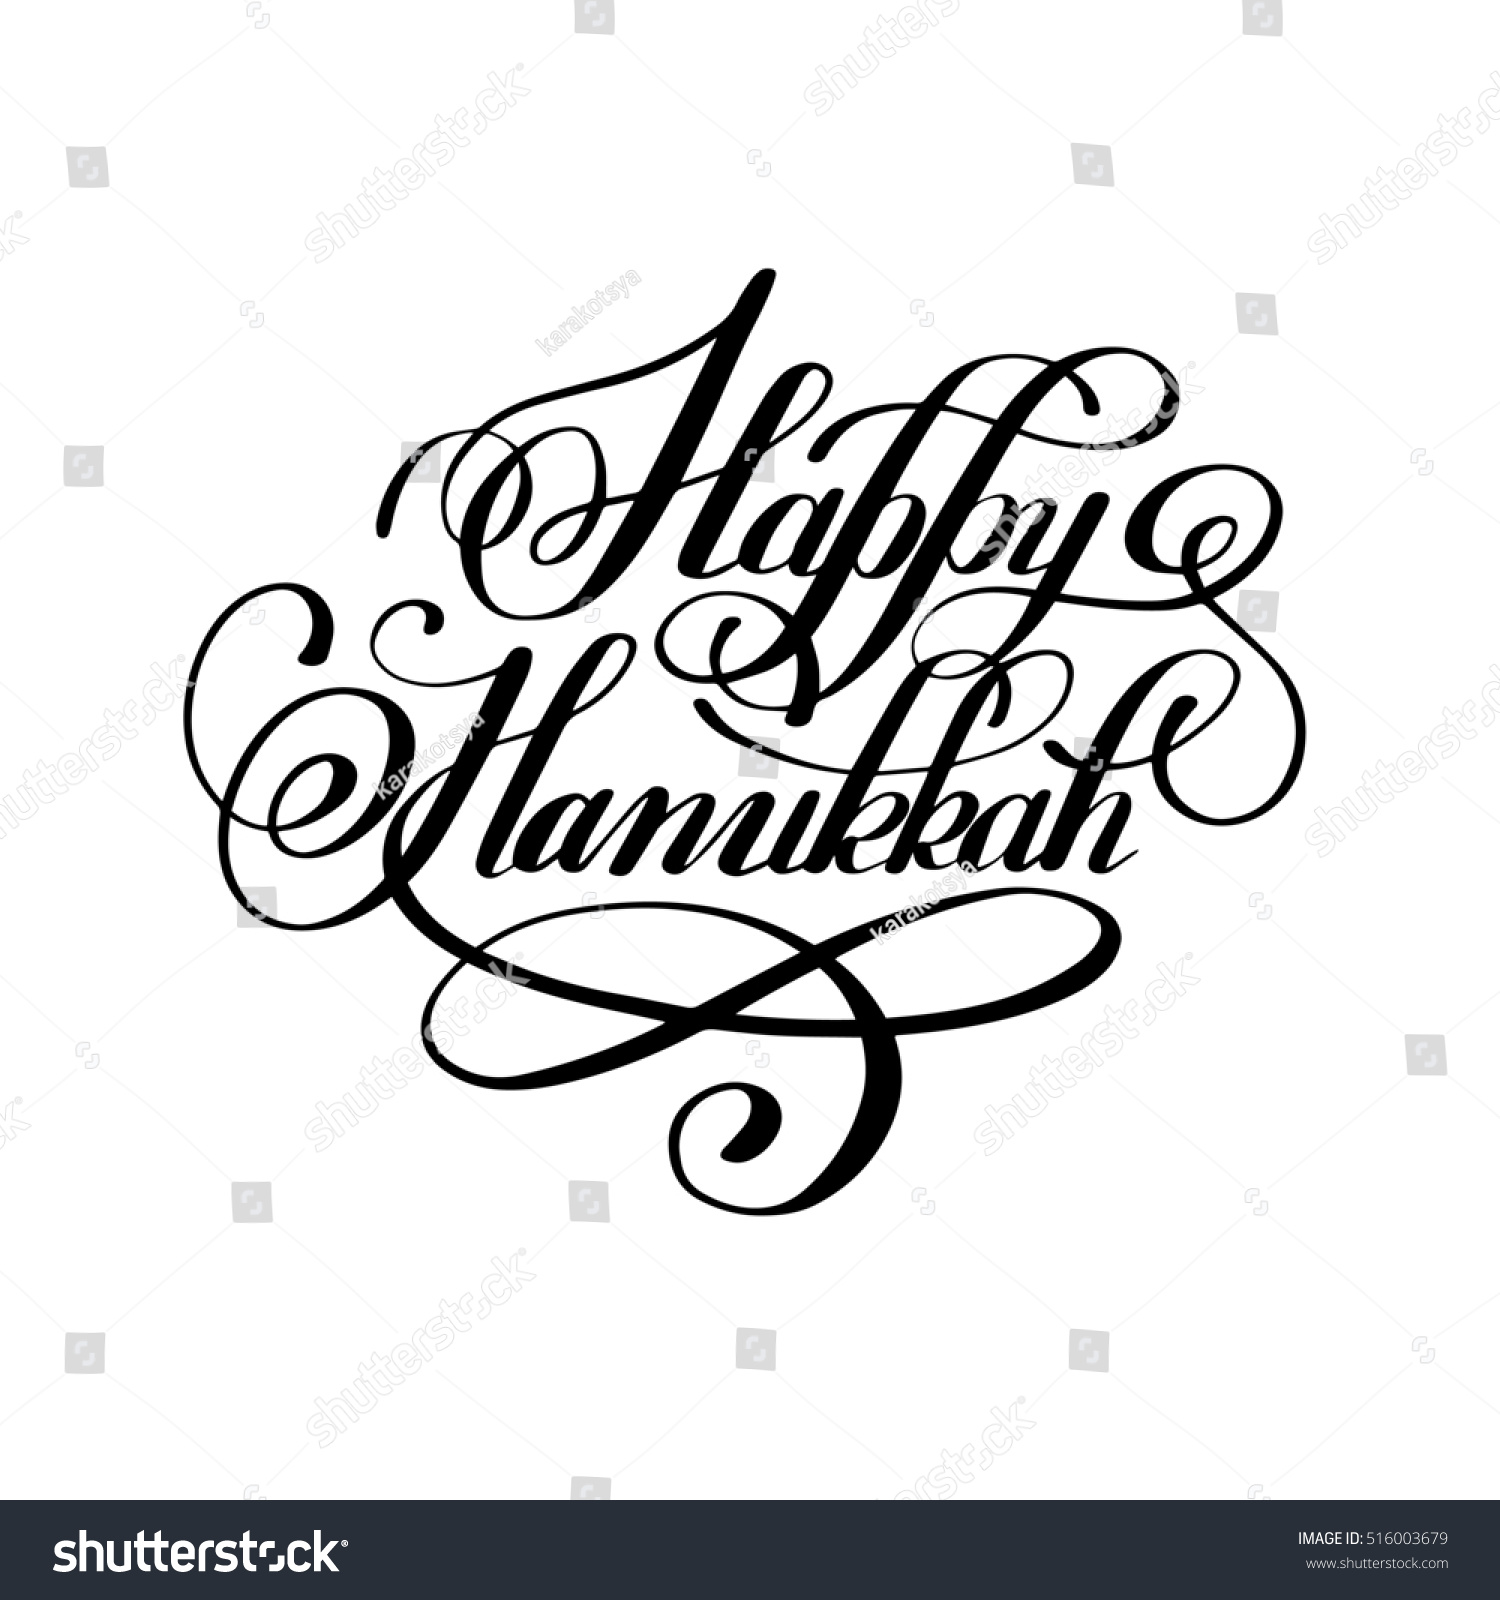 Happy Hanukkah Handwritten Lettering Inscription To Jewish Holiday